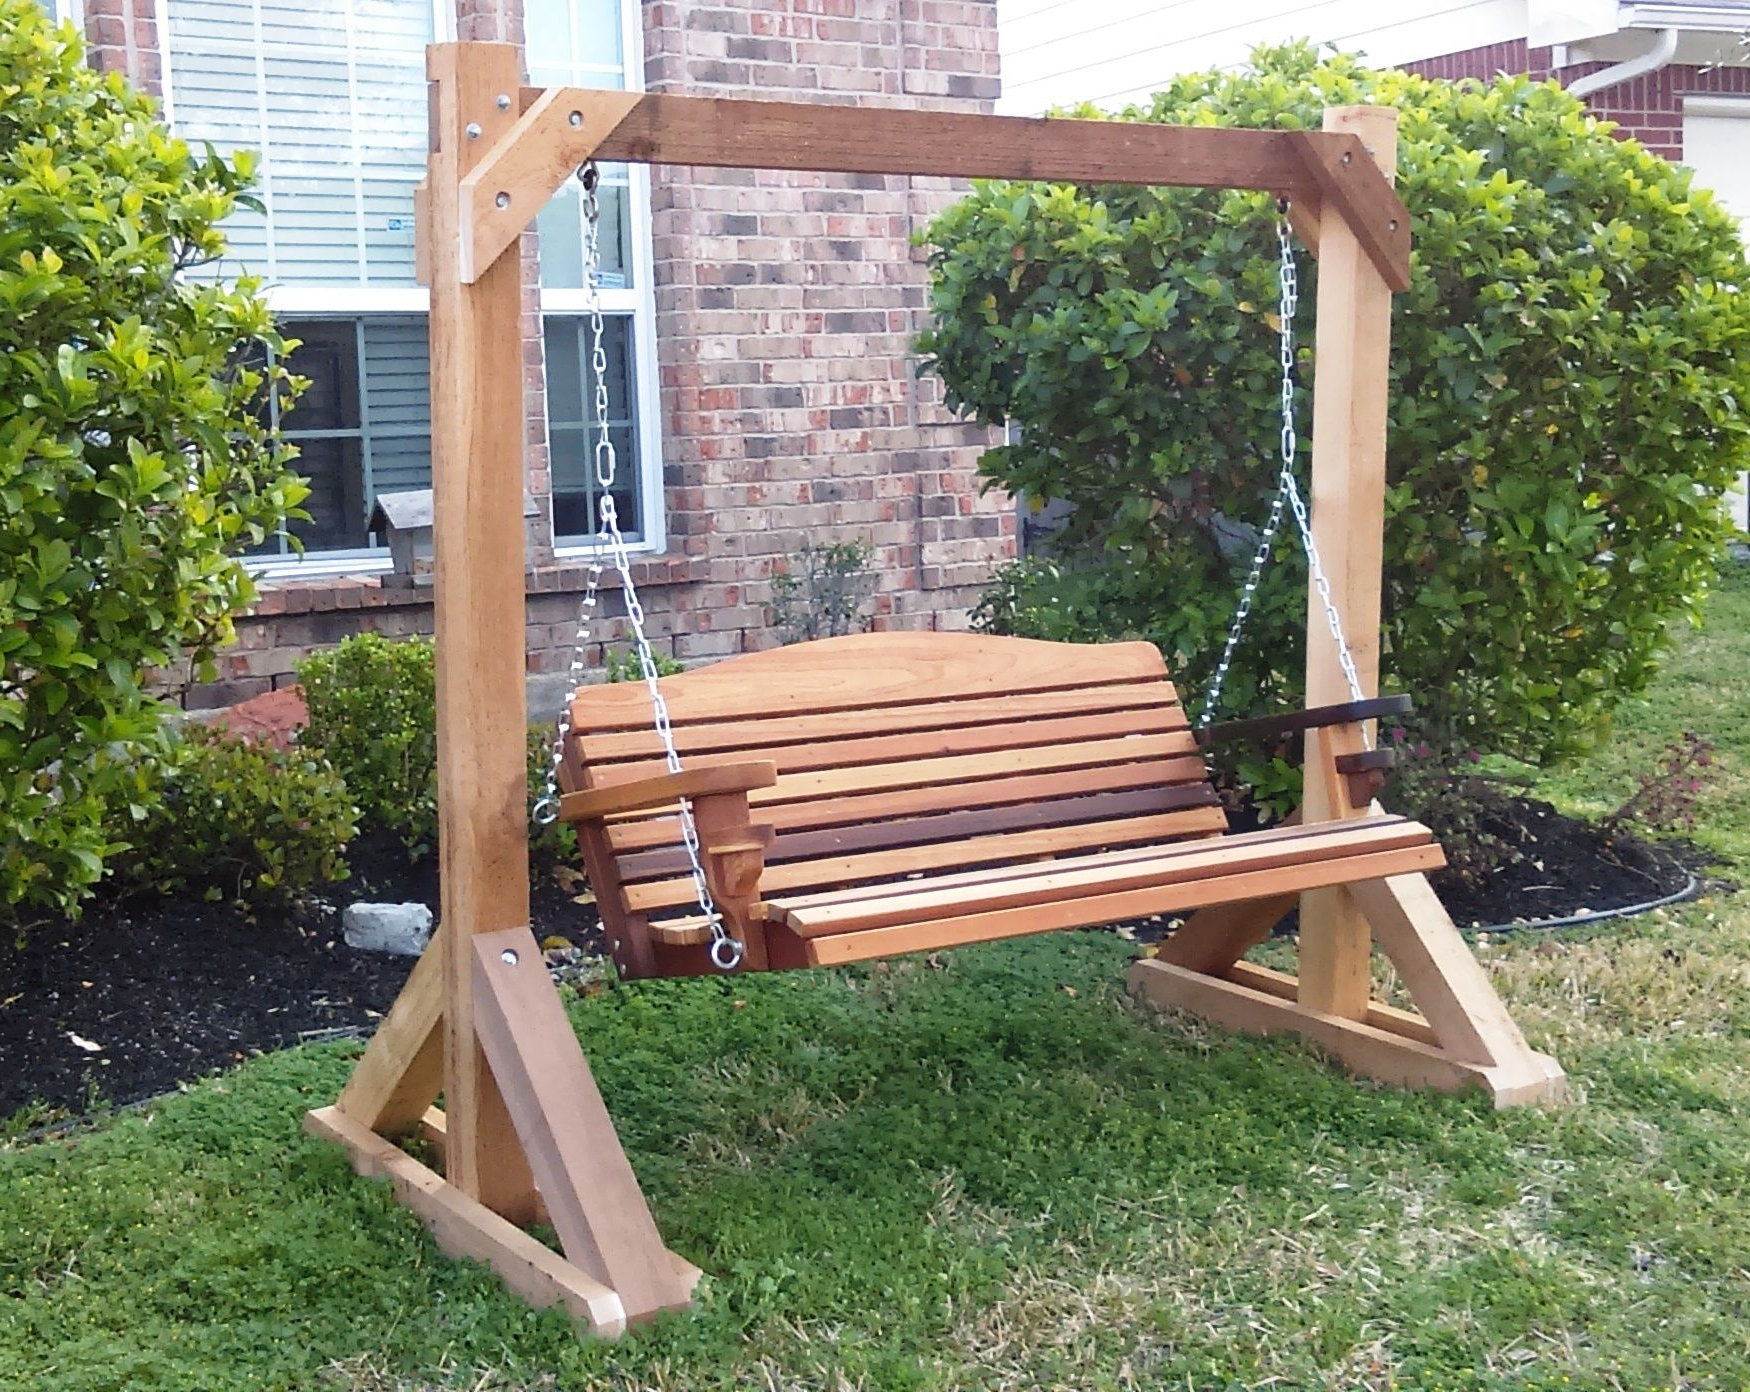 2020 Rosean Porch Swings For Diy Freestanding Porch Swing Frame – Bing Images (View 9 of 30)